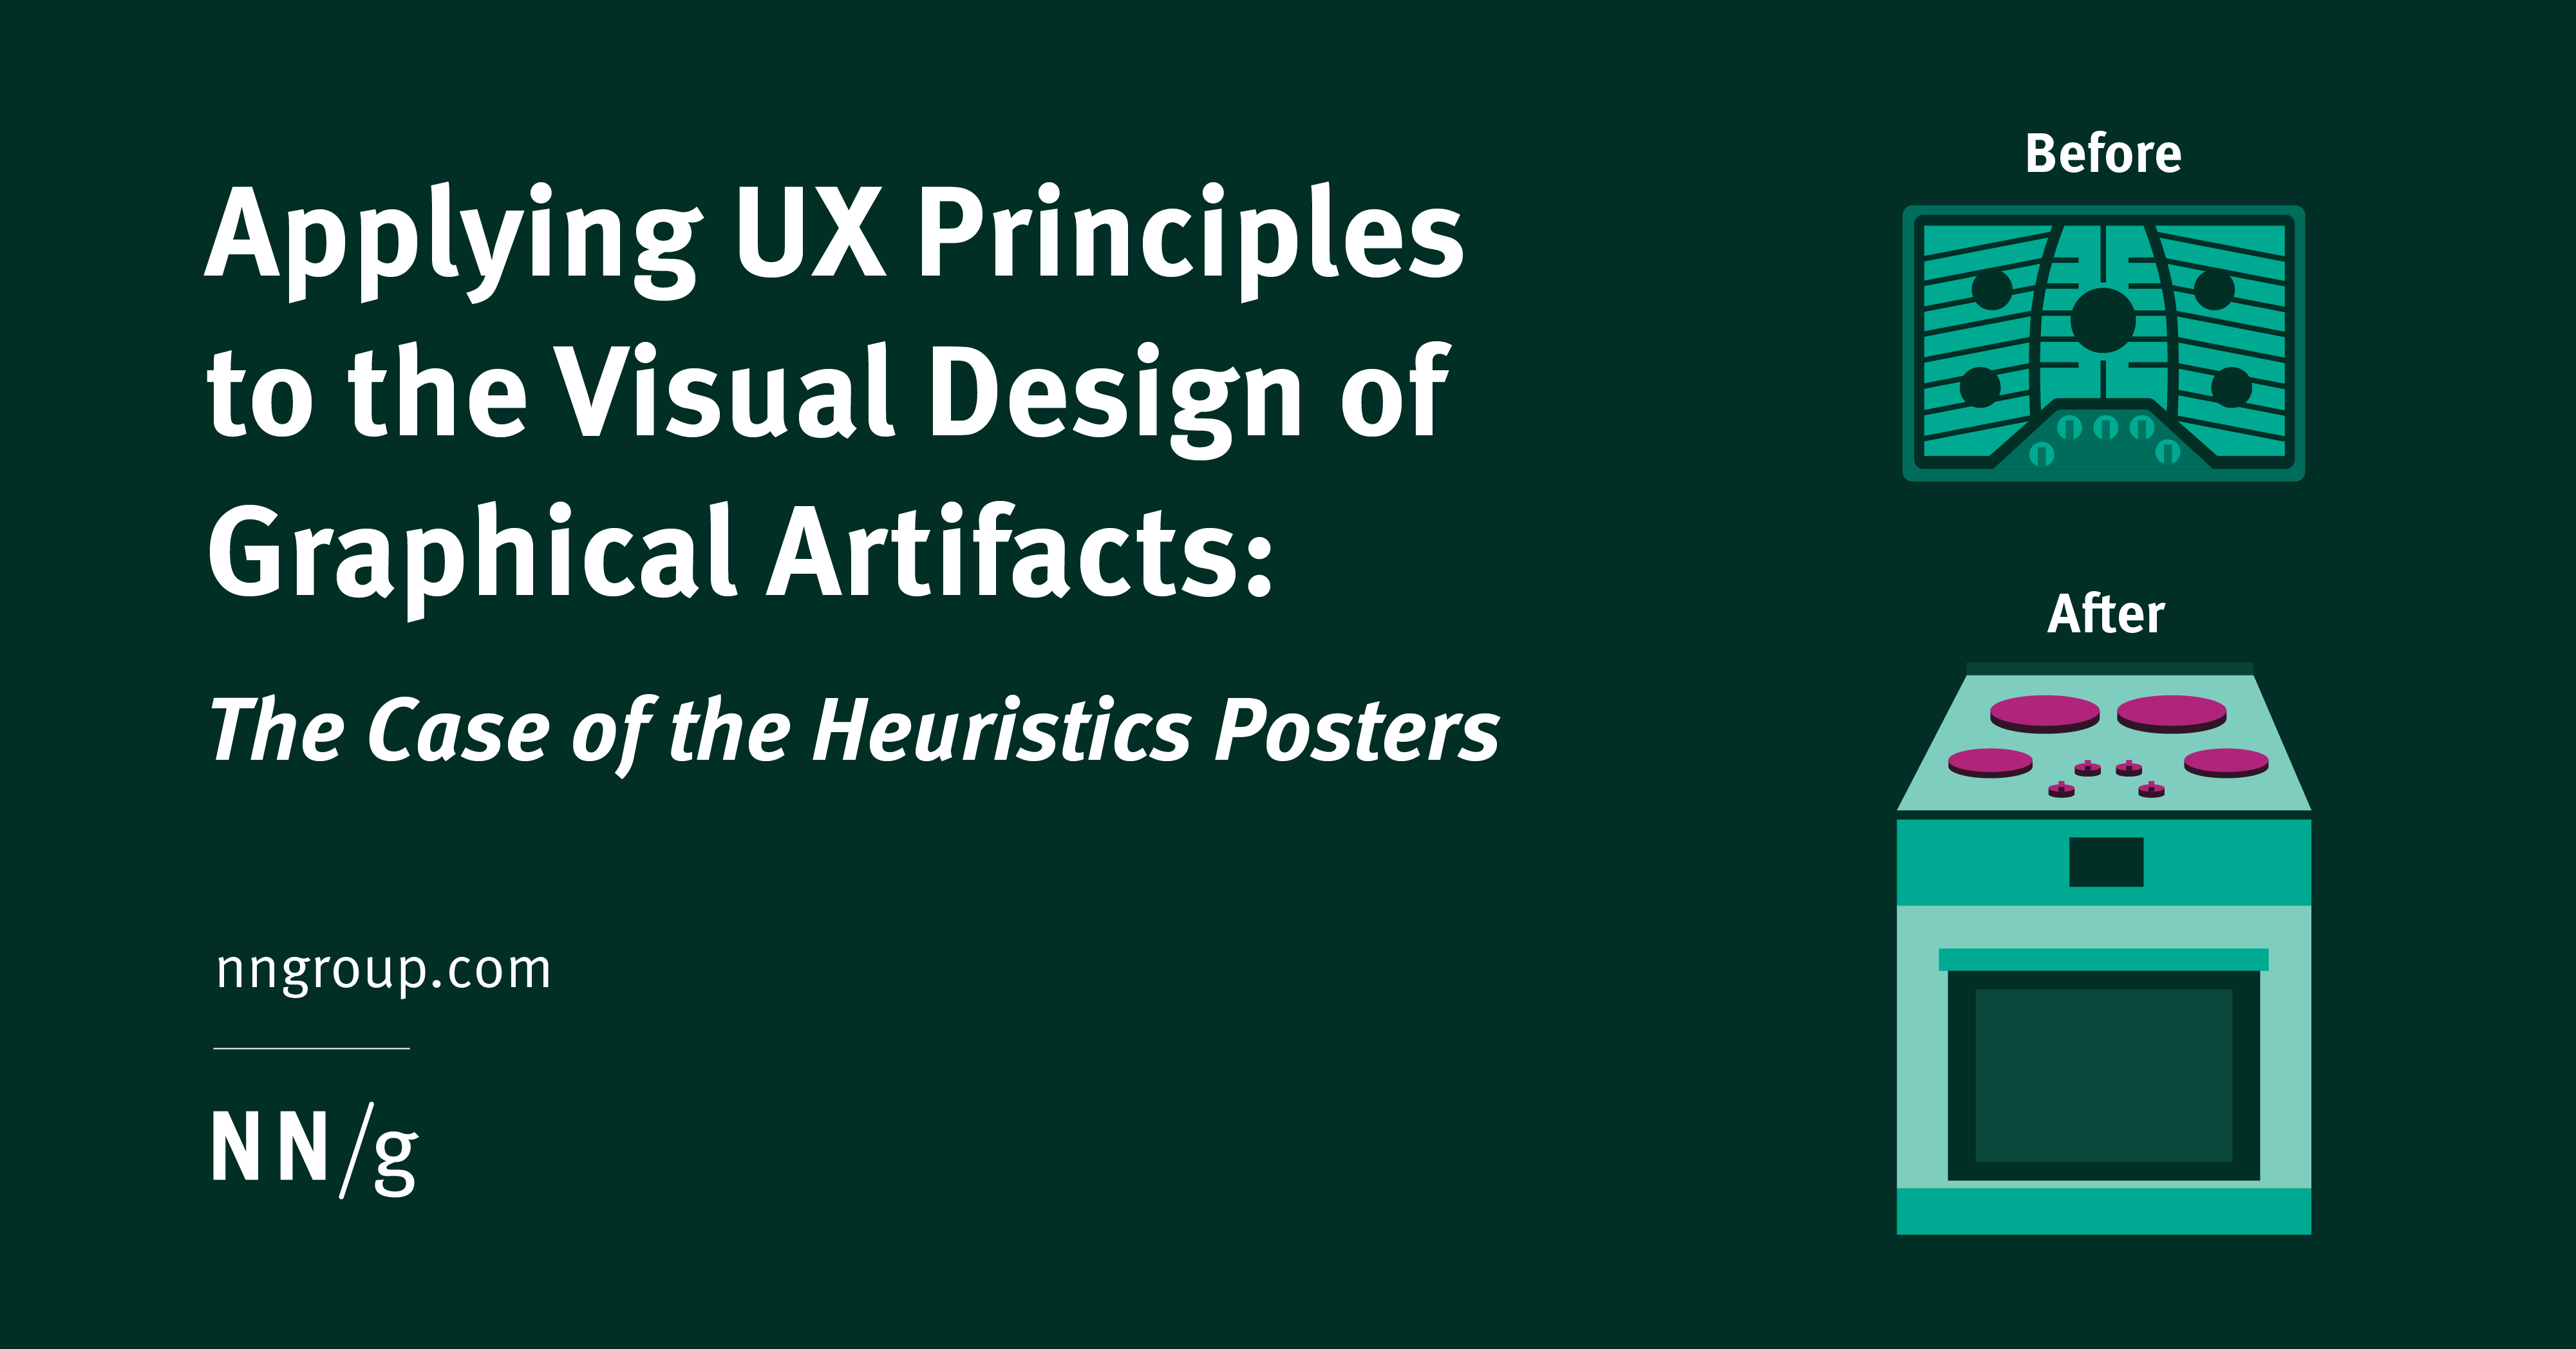 Applying UX Principles to the Visual Design of Graphical Artifacts: The Case of the Heuristics Posters